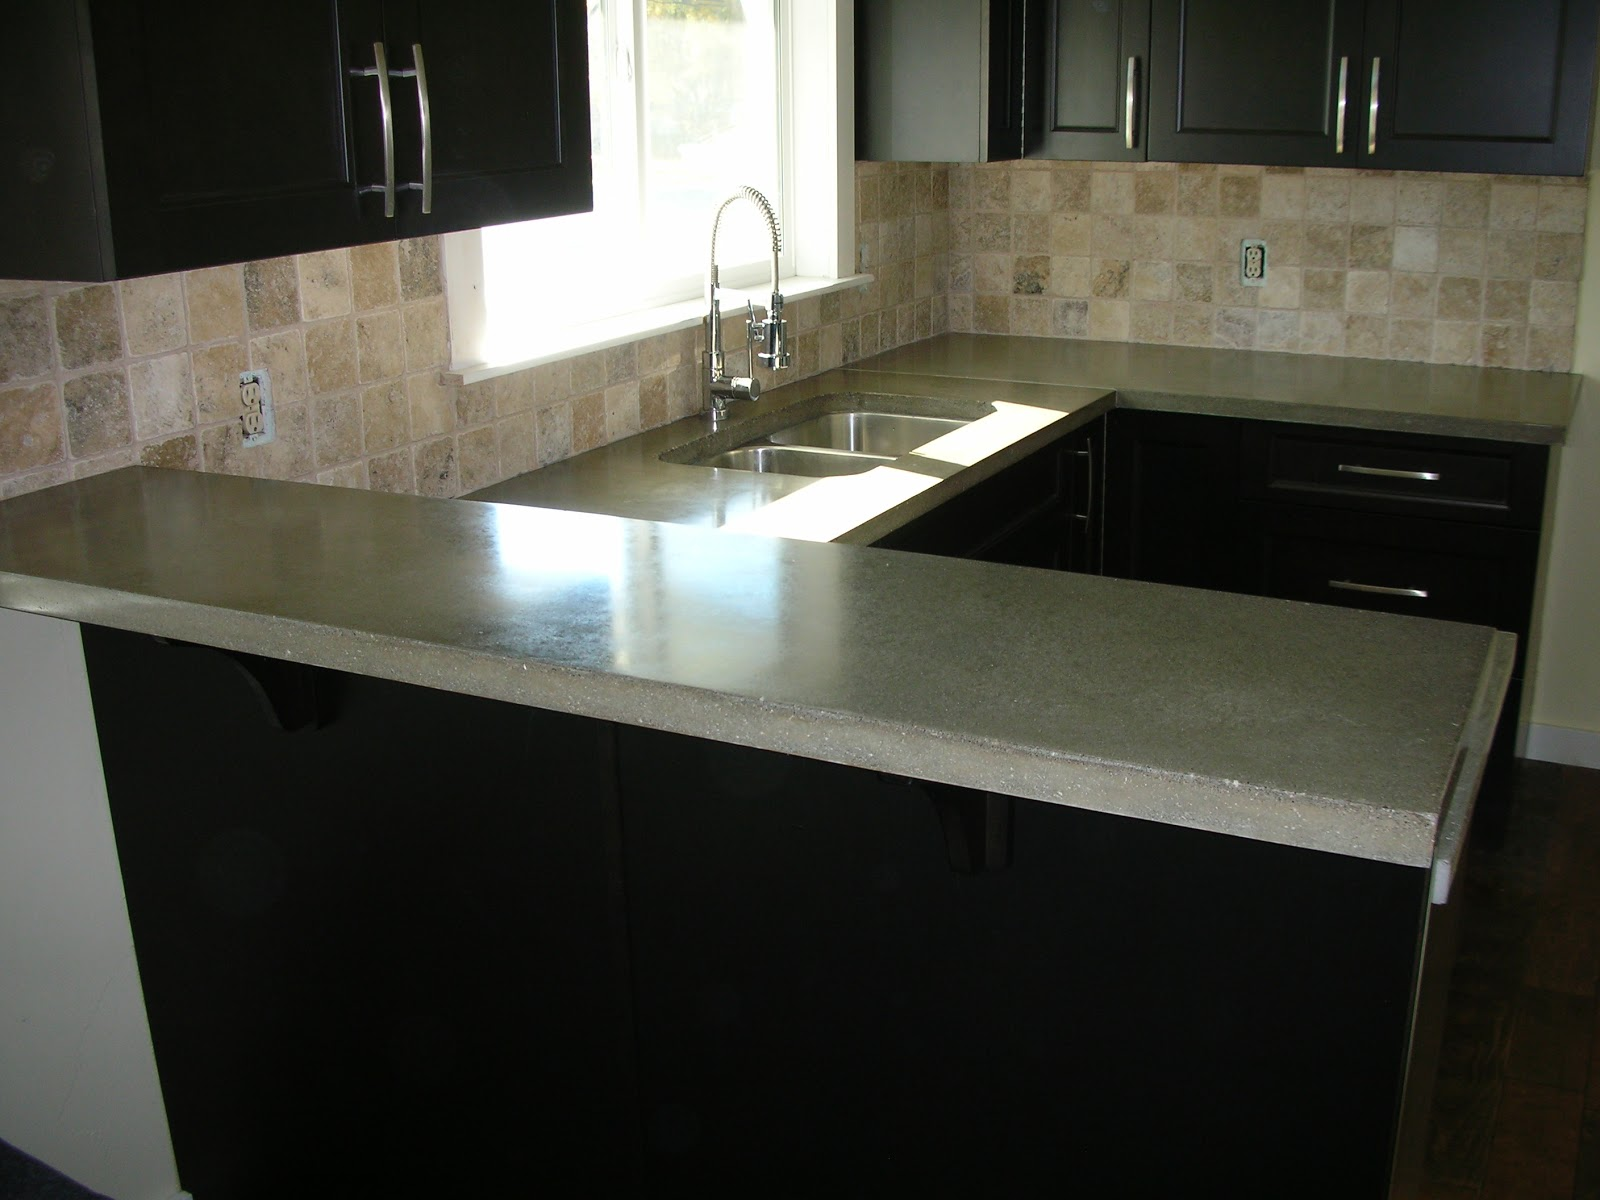 Itu0027s Easy To Fall In Love With The Look Of A Top Quality Concrete Countertop,  Youu0027ll Be Addicted To Running Your Hand Over The Super Smooth, ...